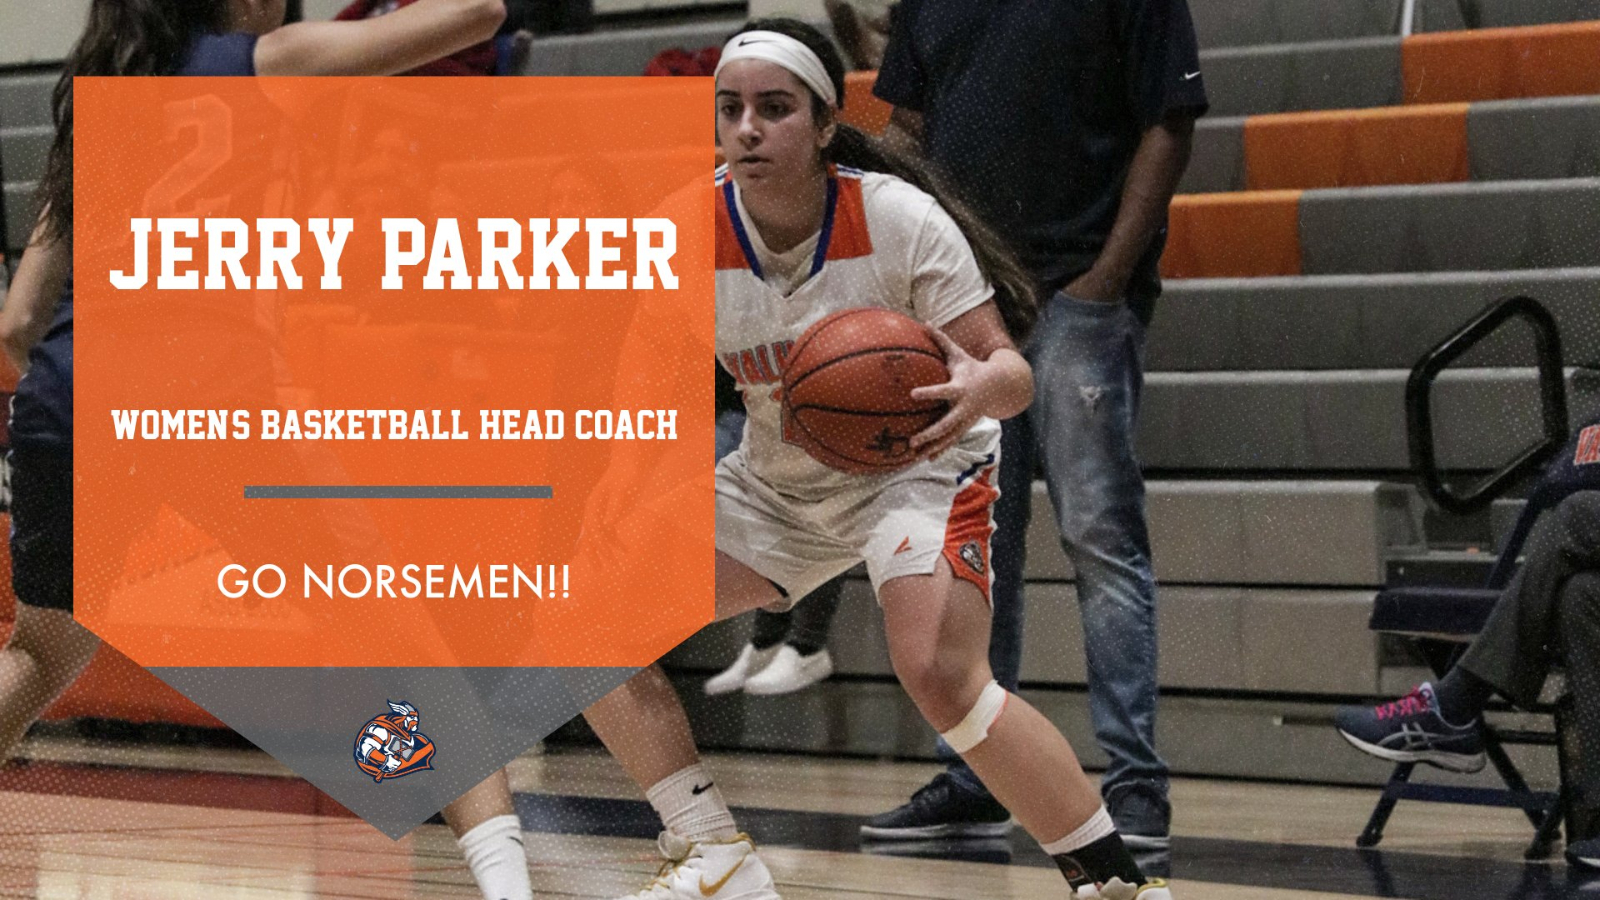 New Women's Basketball Head Coach – Jerry Parker